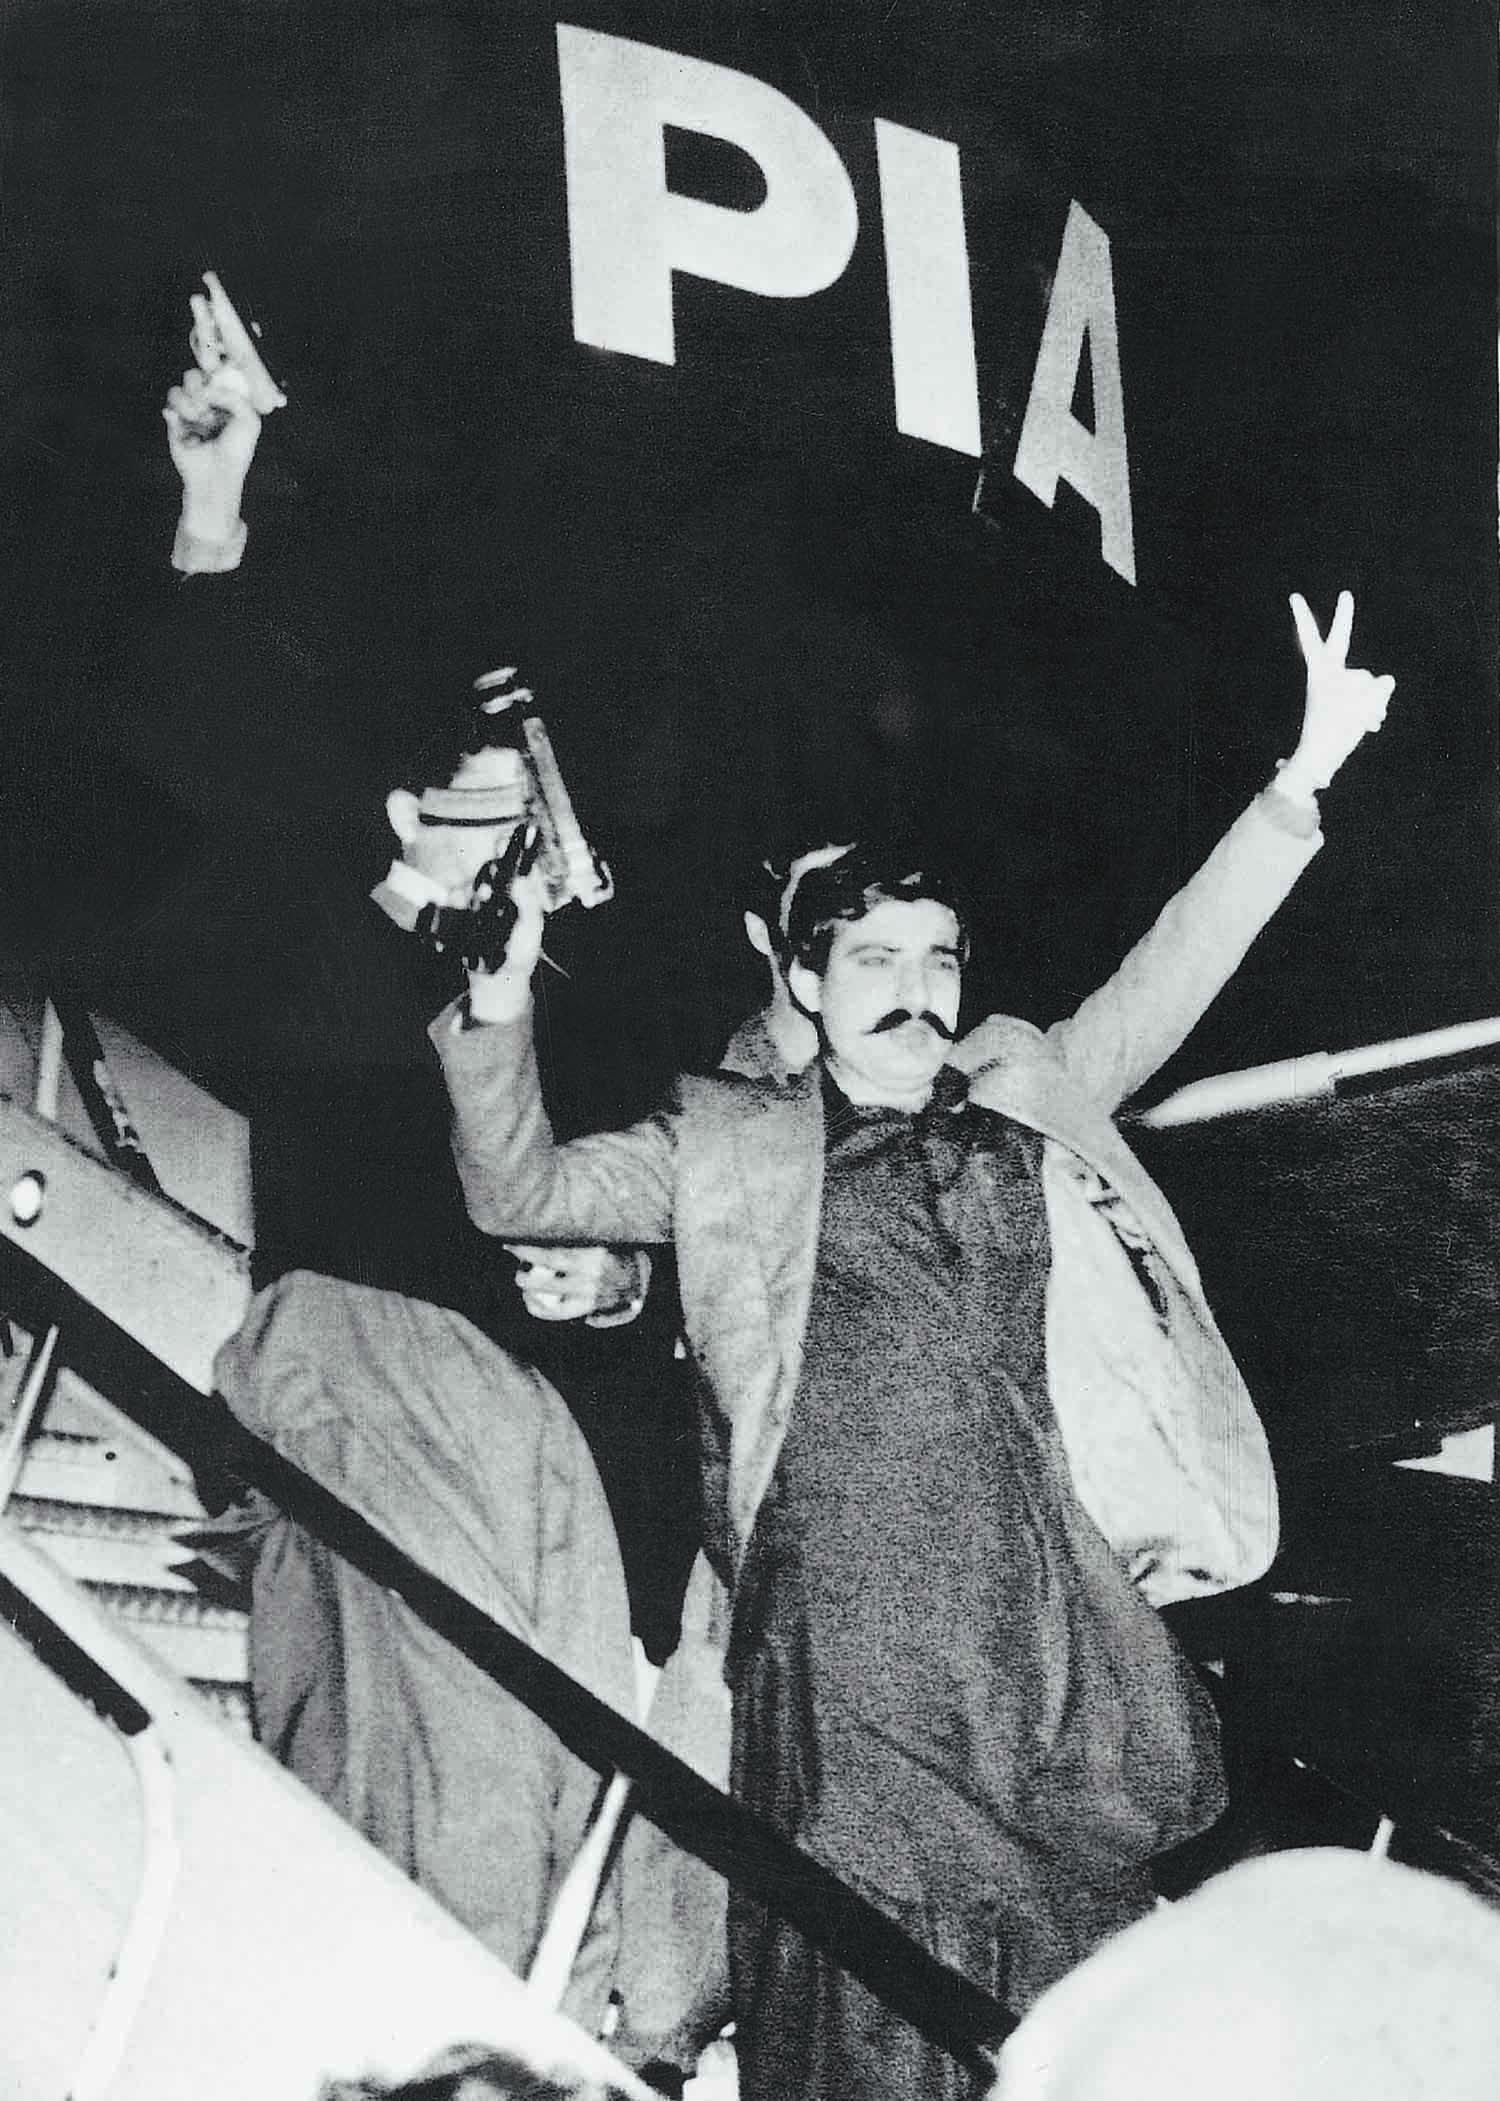 Al-Zulfikar activist Salamullah Tipu, alias Alamgir, waving arms and flashing a 'V' sign at Damascus Airport in Syria, leaving the PIA plane that he and his colleagues had hijacked while it was on its way from Karachi to Peshawar in March 1981. | Photo: Dawn / White Star Archives